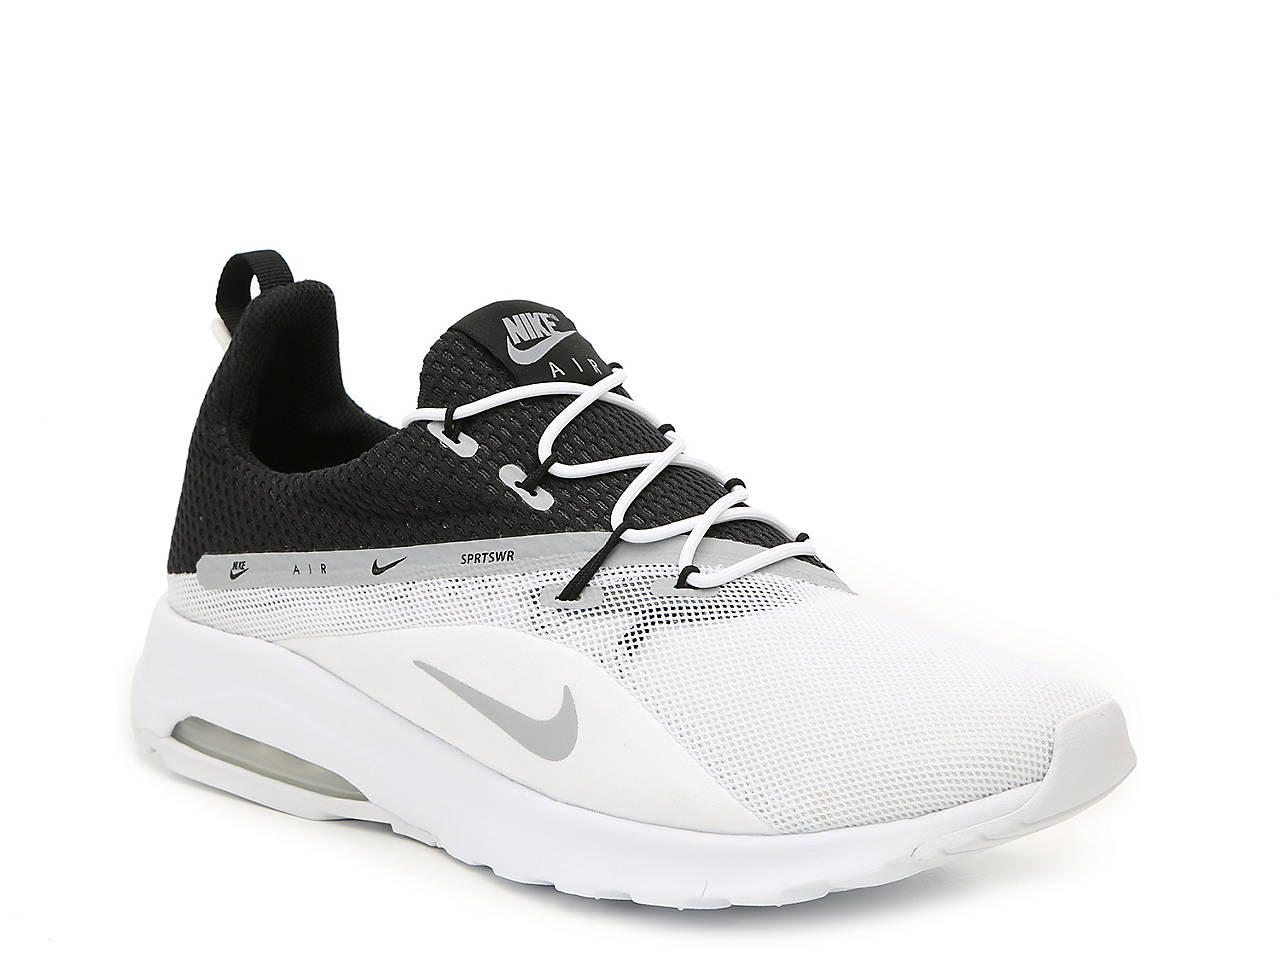 0a7a7f6c70 Nike Air Max Motion Racer 2 Sneaker - Men's Men's Shoes | DSW